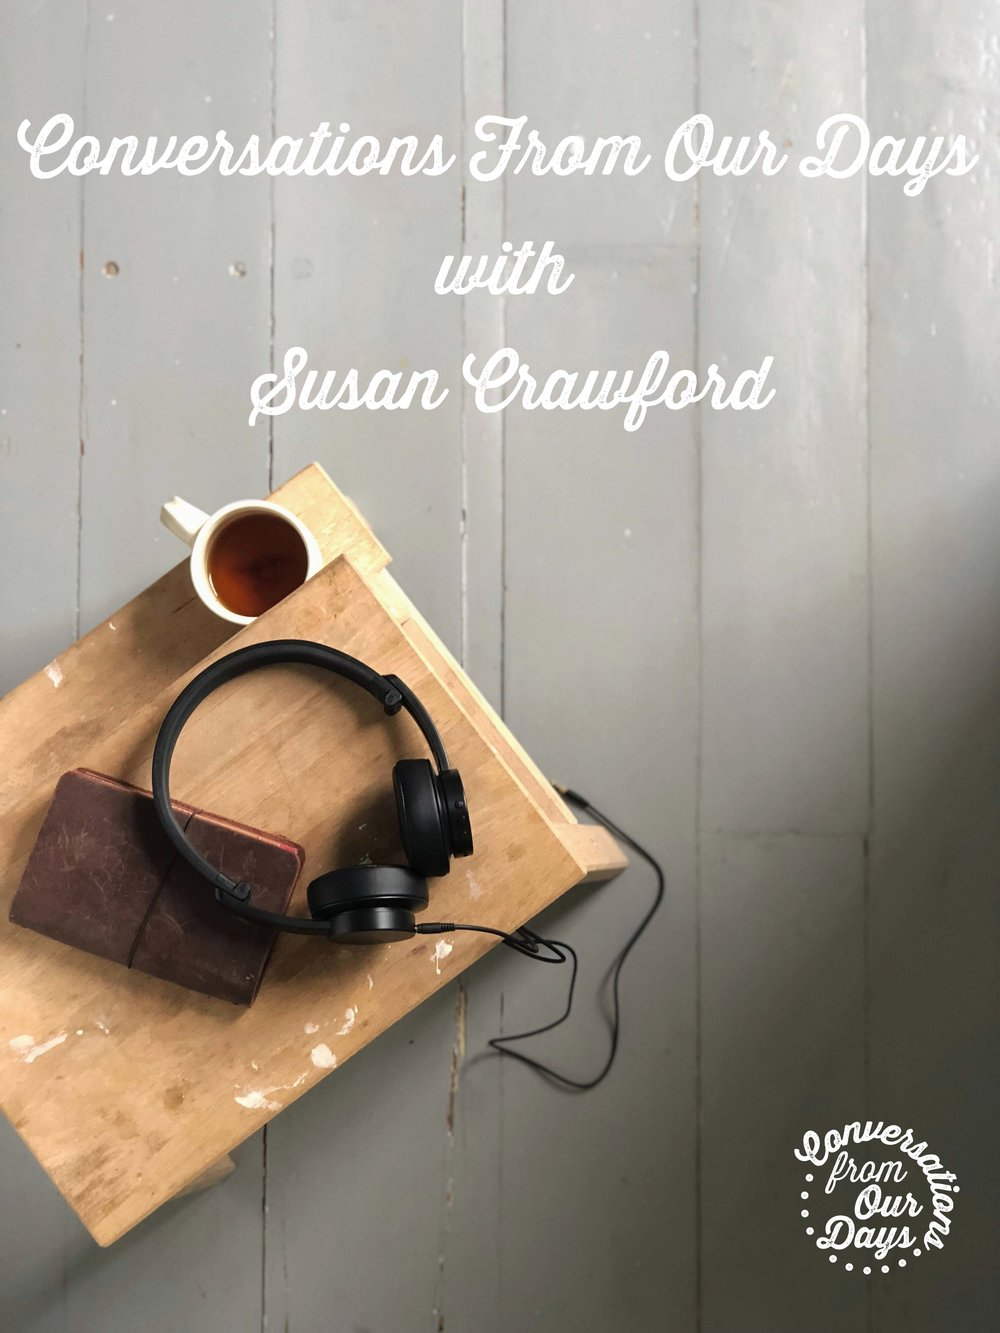 Conversations from our days with Susan Crawford portrait.jpg